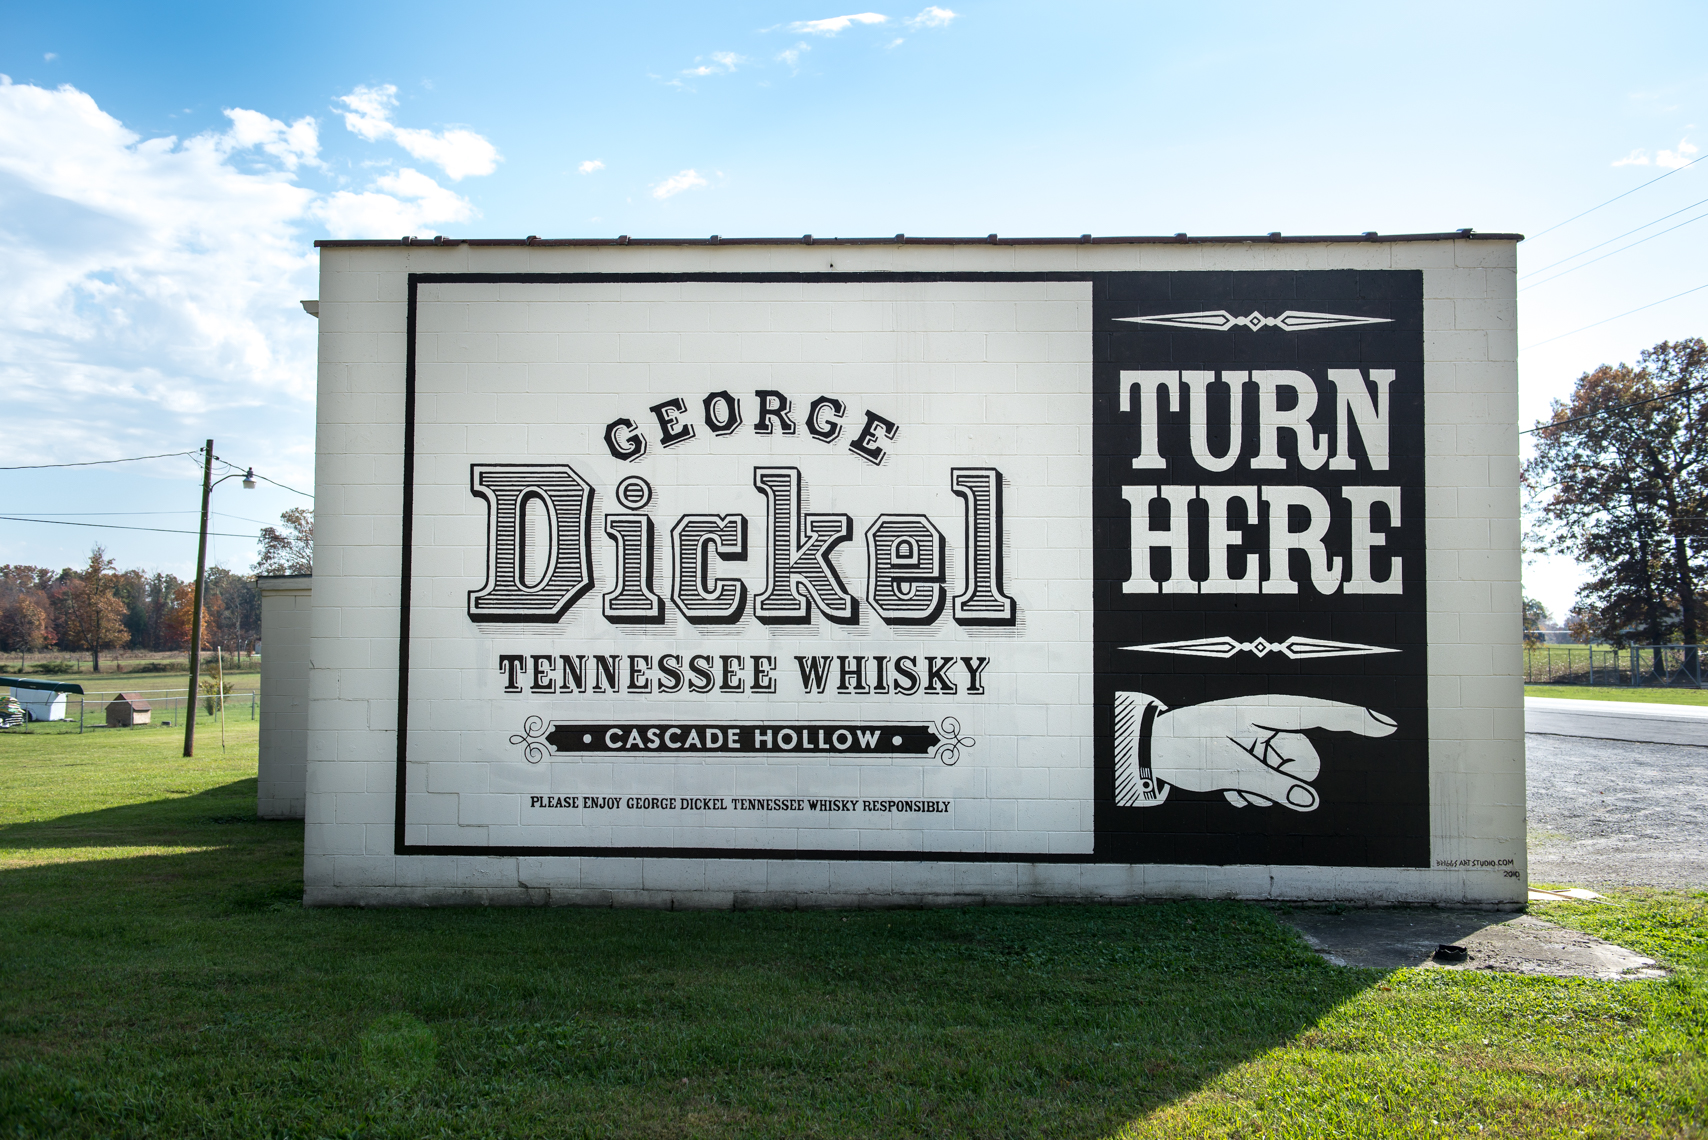 George Dickel Distillery - Tennessee Whiskey, Reportage, Travel, Narrative, Kentucky, Southern, lifestyle,  stock photography, reportage, Kristina Krug Photographer, Southeast, Chicago, barrels, bourbon, whisky, photojournalist, photojournalism, Travel Photographer, beverage, industrial, industry, agriculture, liquor, lifestyle, travel photographer, whisky advocate, beer, southern life, whisky